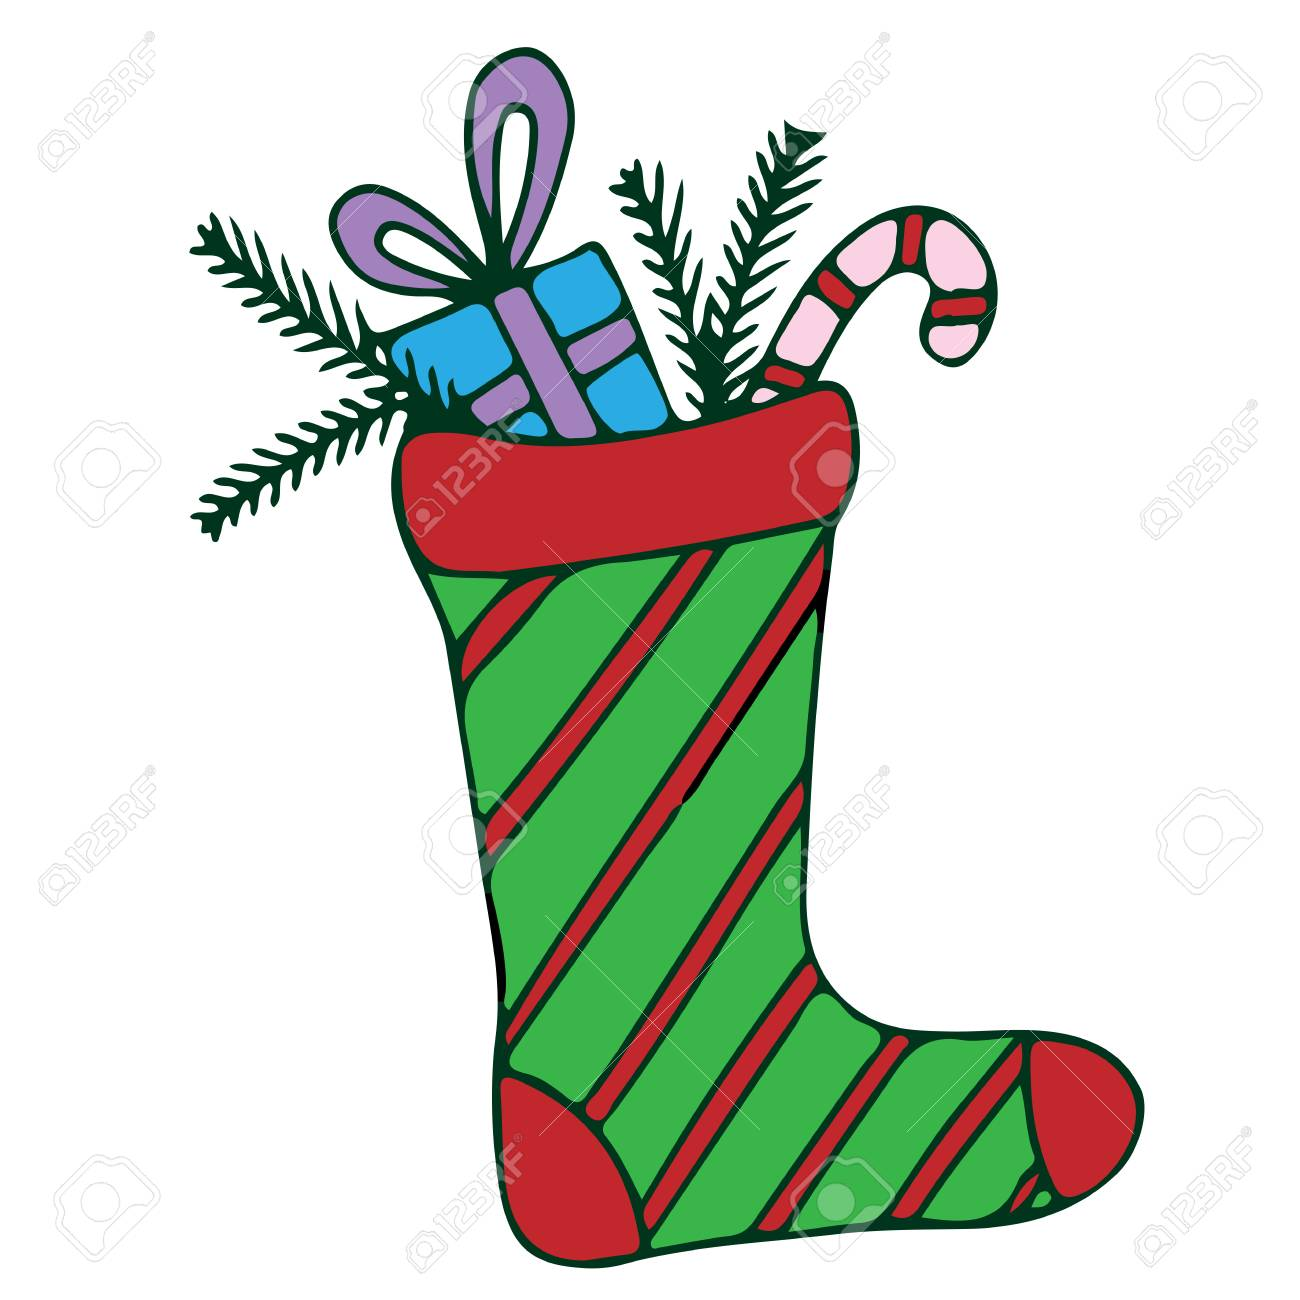 Colorful Christmas Stocking With Candy And Gift Illustration